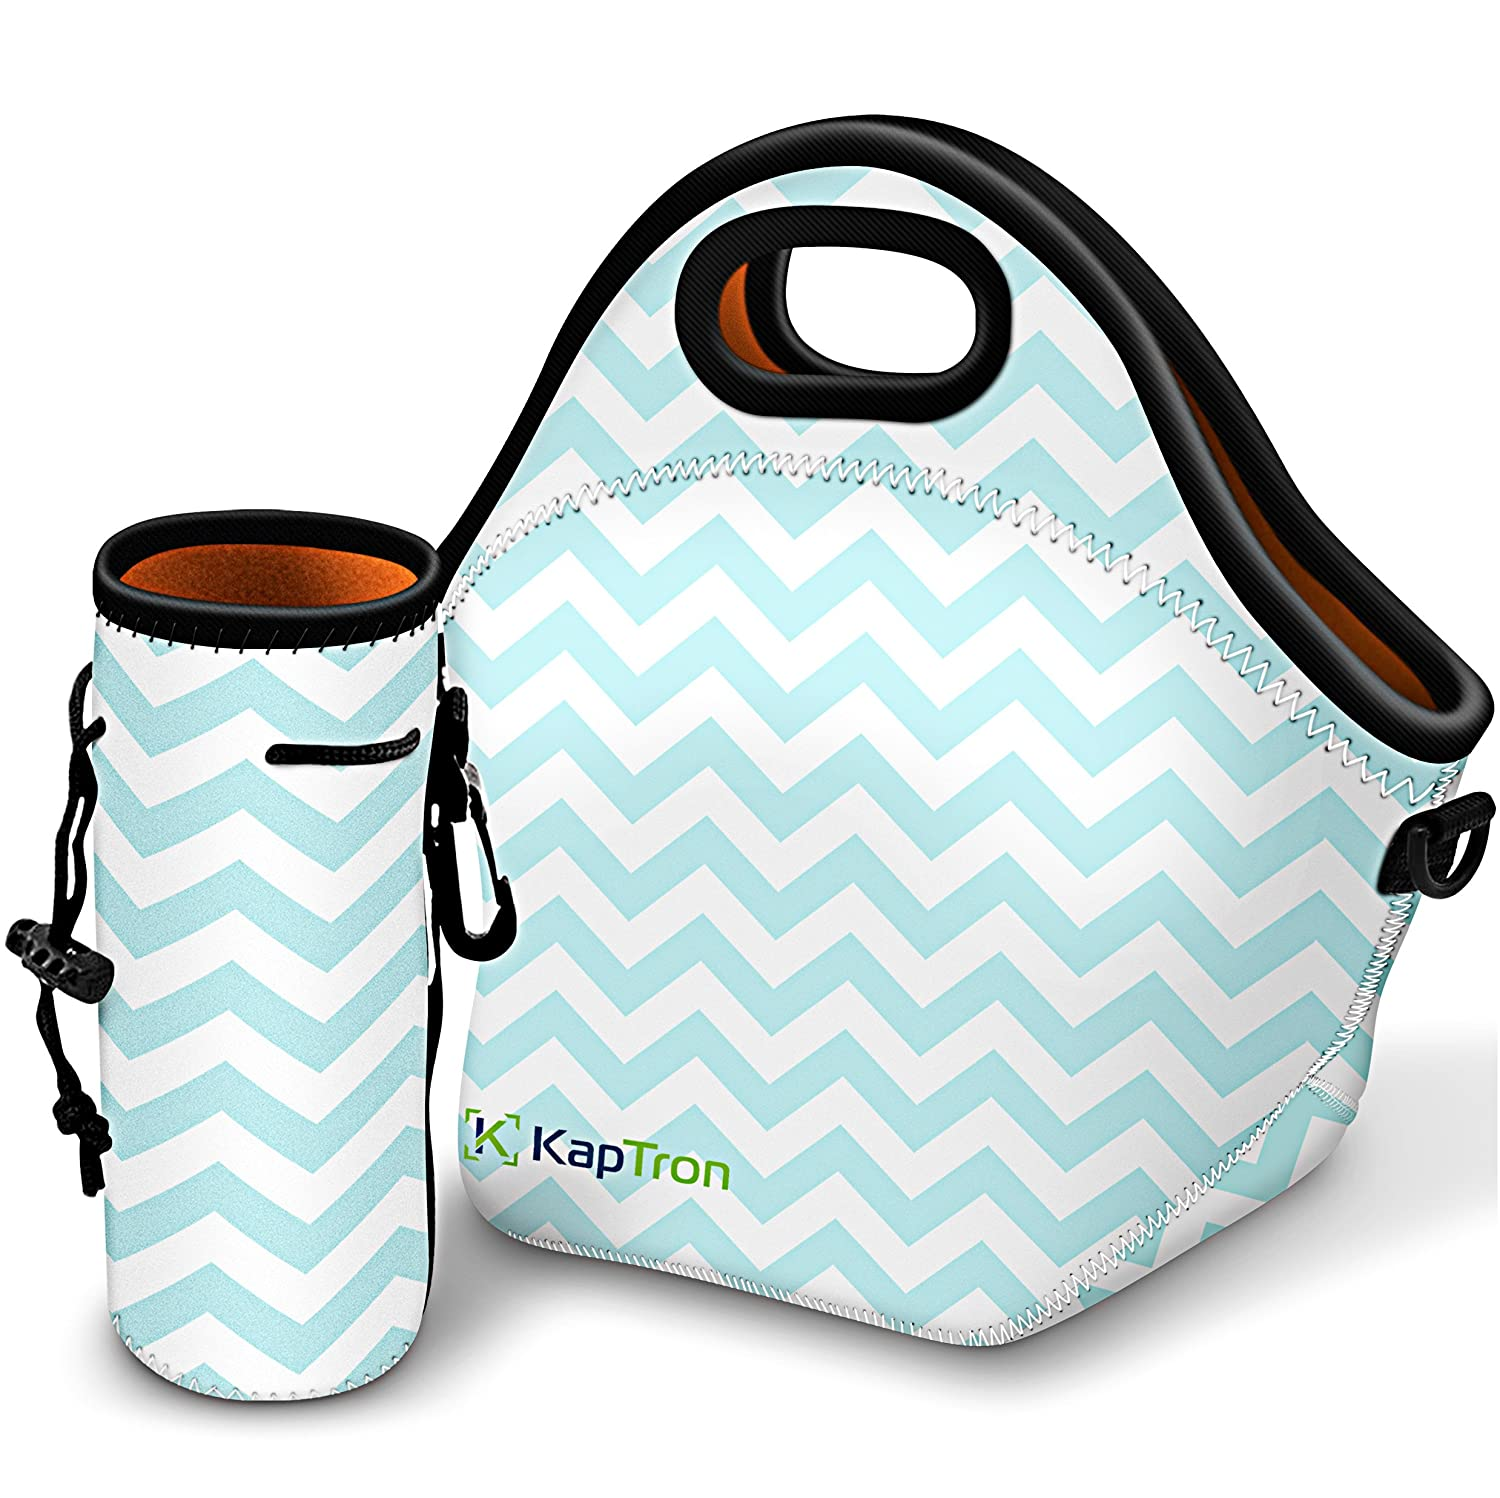 Kaptron Lunch Bag, Thick insulated Lunch Tote Lunch Box Bag with Shoulder Straps and Bottle Holder/Cover for adults, women, girls, school children - Suitable for Travel, Picnic, Office (Small) COMIN18JU095503